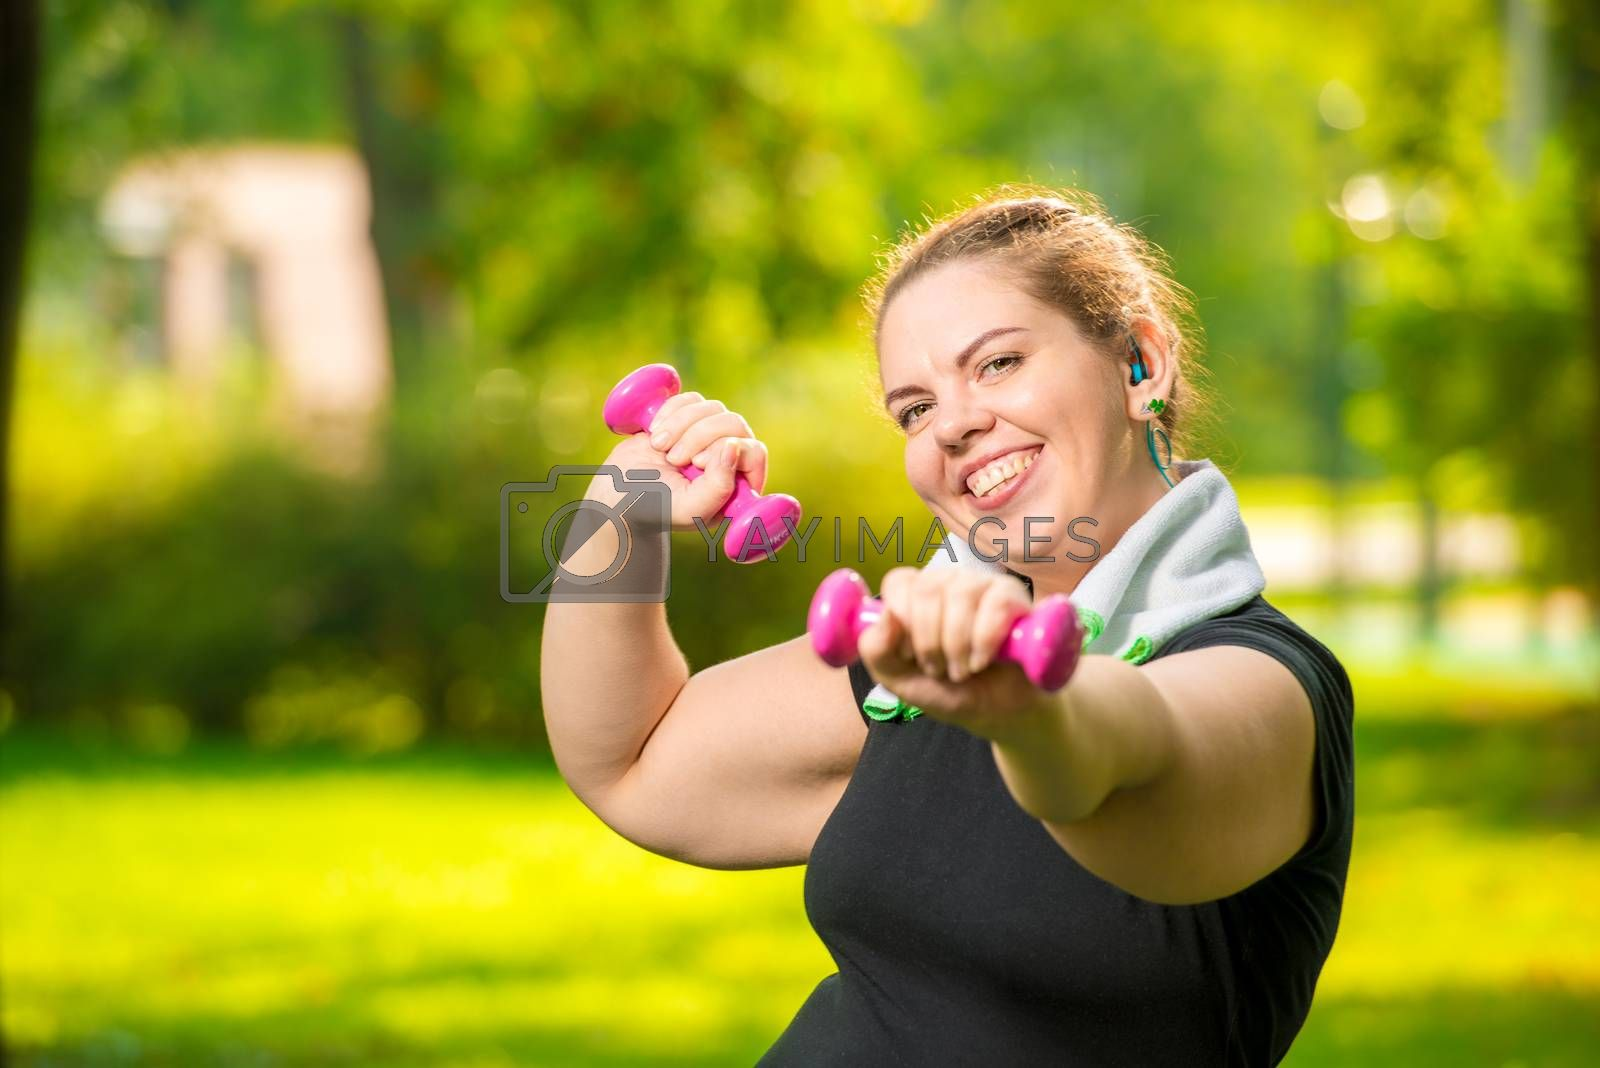 portrait of smiling plus size woman with dumbbells in the park d by Labunskiy K.